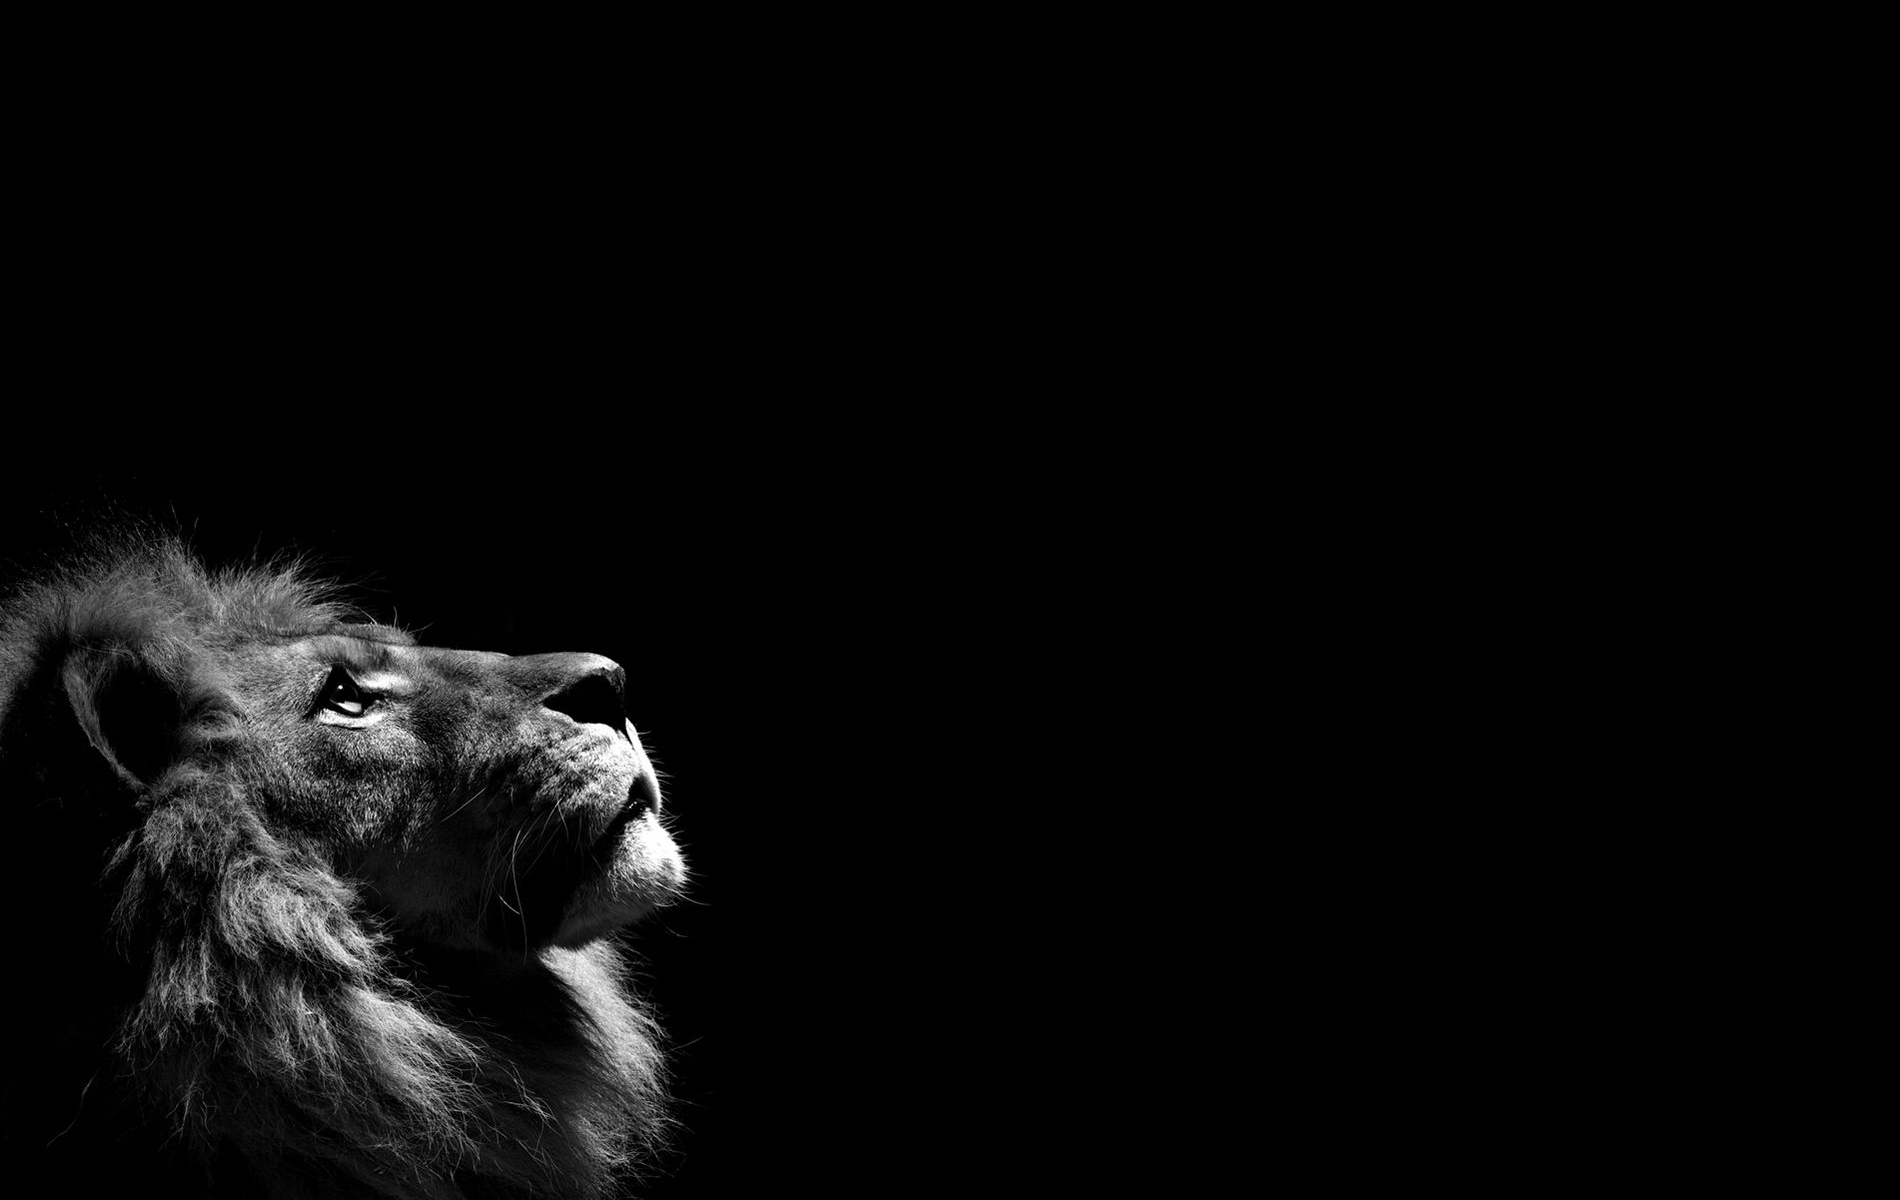 lion black and white hd photo wallpapers 2038 - hd wallpaper site